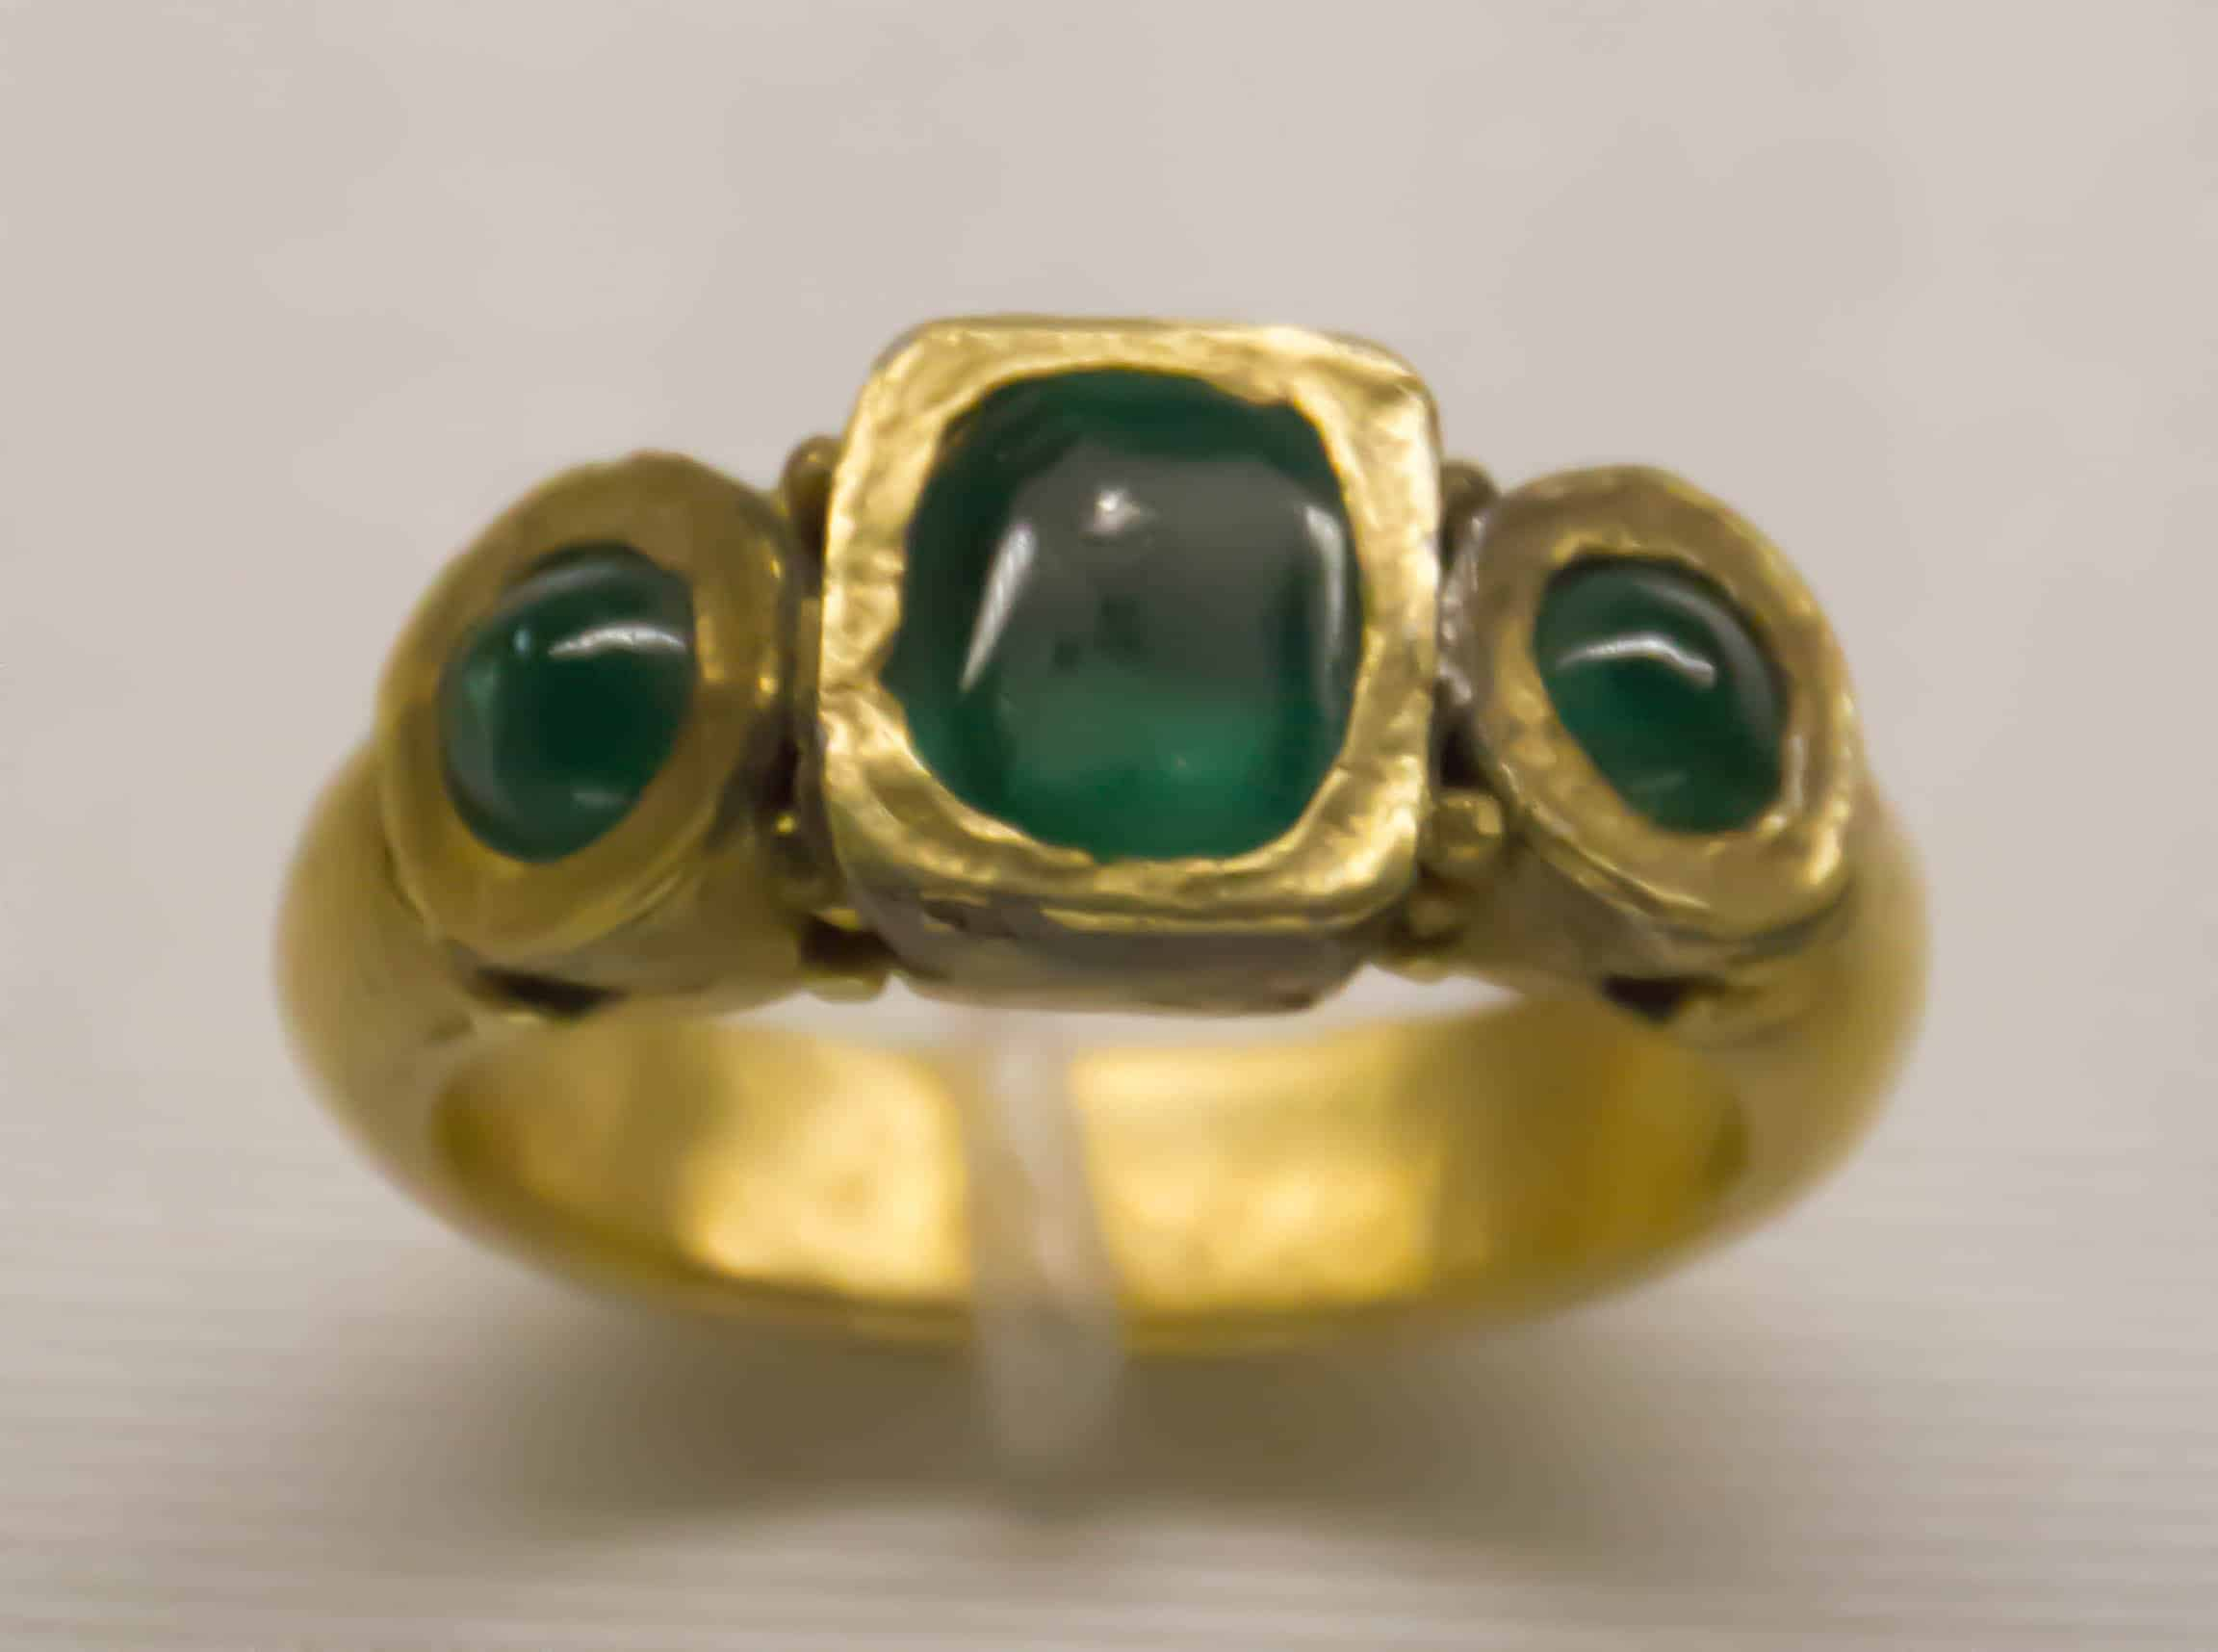 gabrielle mens wedding product emerald yellow select architectural ring gold very